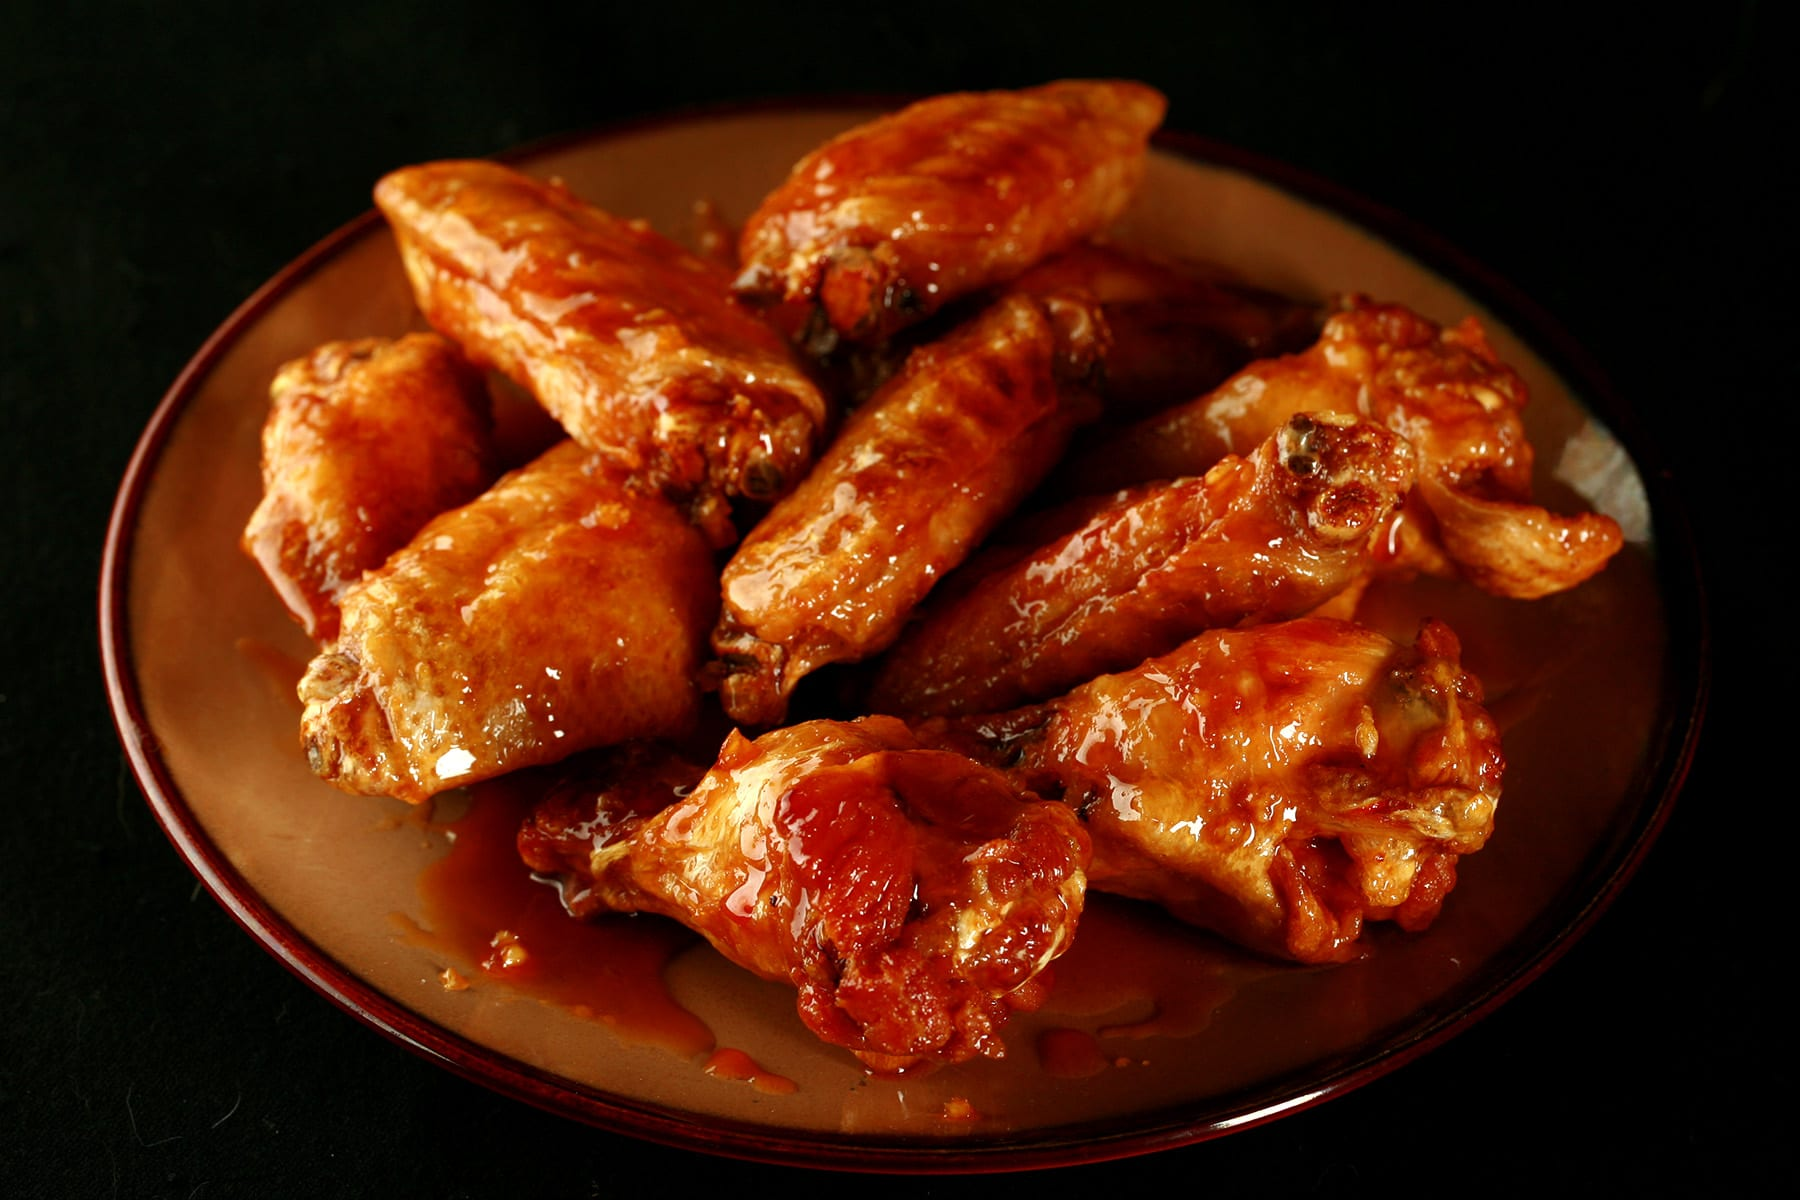 A close up view of a pile of honey garlic wings on a small brown plate.